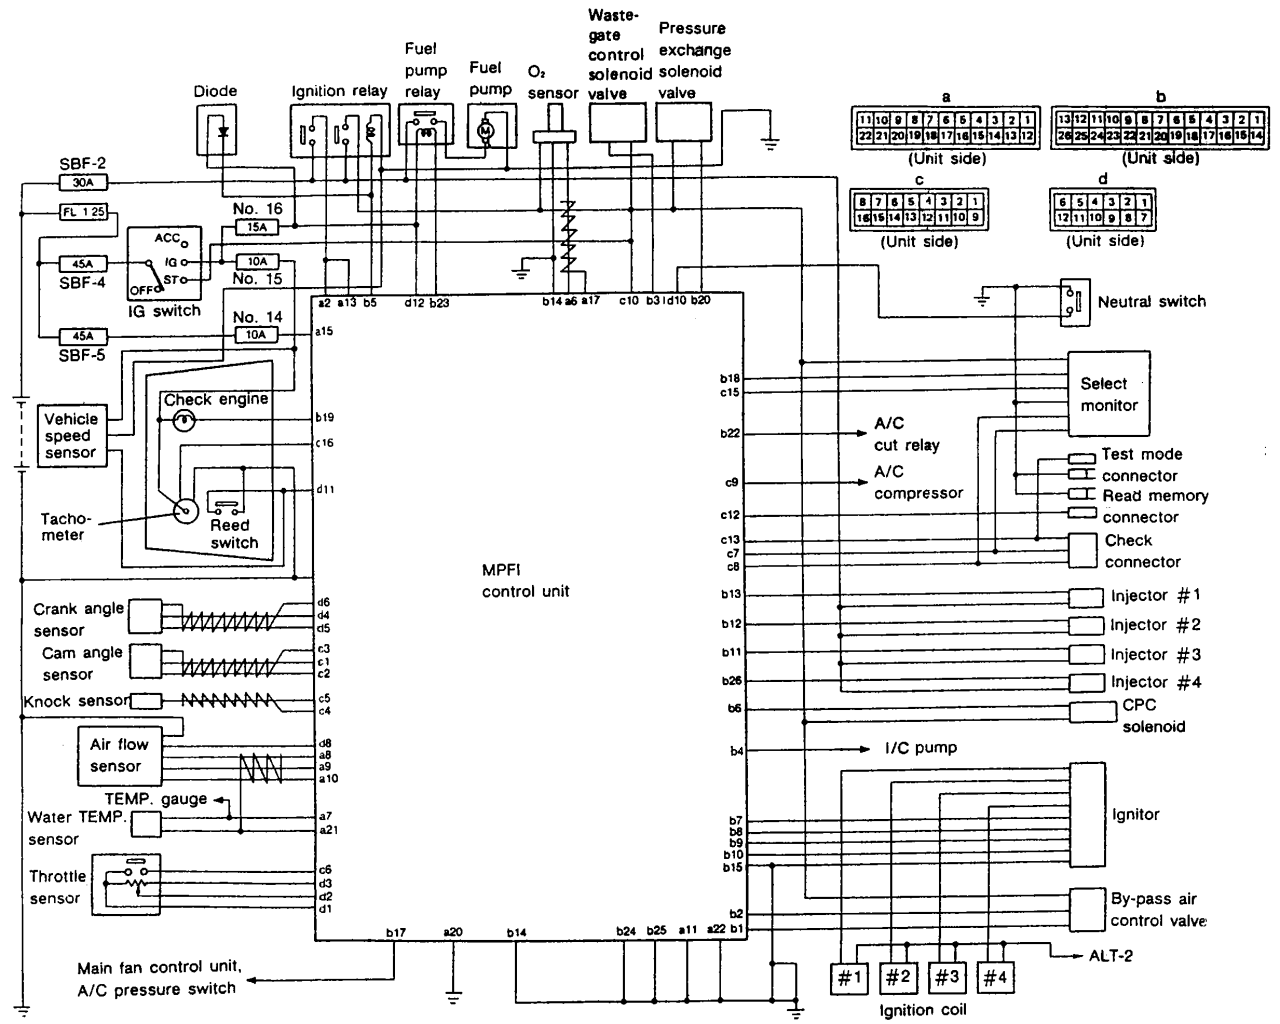 subaru wiring diagram wiring diagrams 92 liberty rs ecu subaru wiring diagram 92 liberty rs ecu